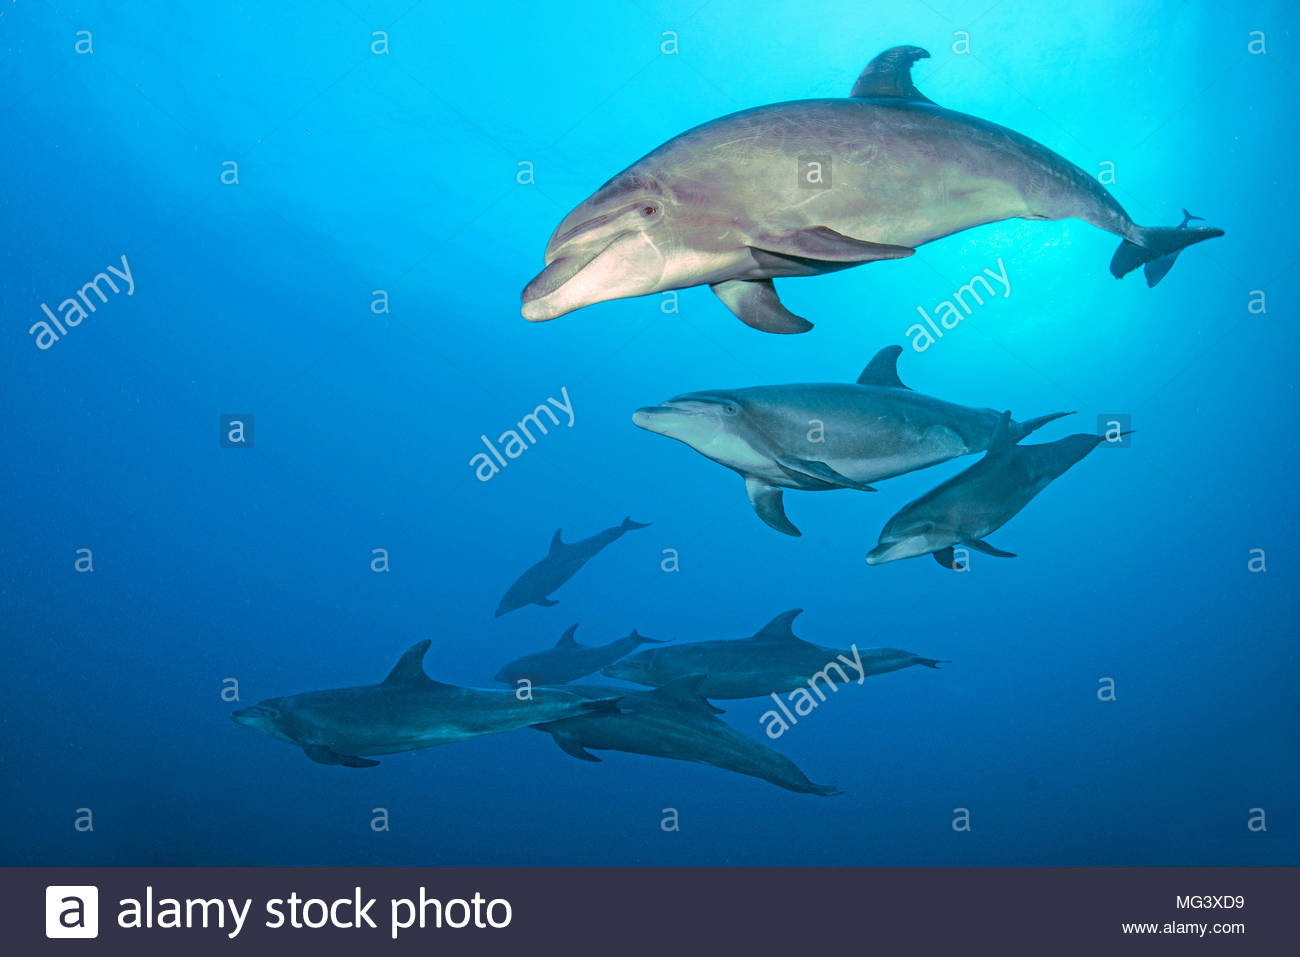 Grosser Tuemmler (Tursiops truncatus), Gruppe, Socorro Inseln, Mexiko | Bottlenose dolphin (Tursiops truncatus), group, Socorro islands, Mexico - Stock Image